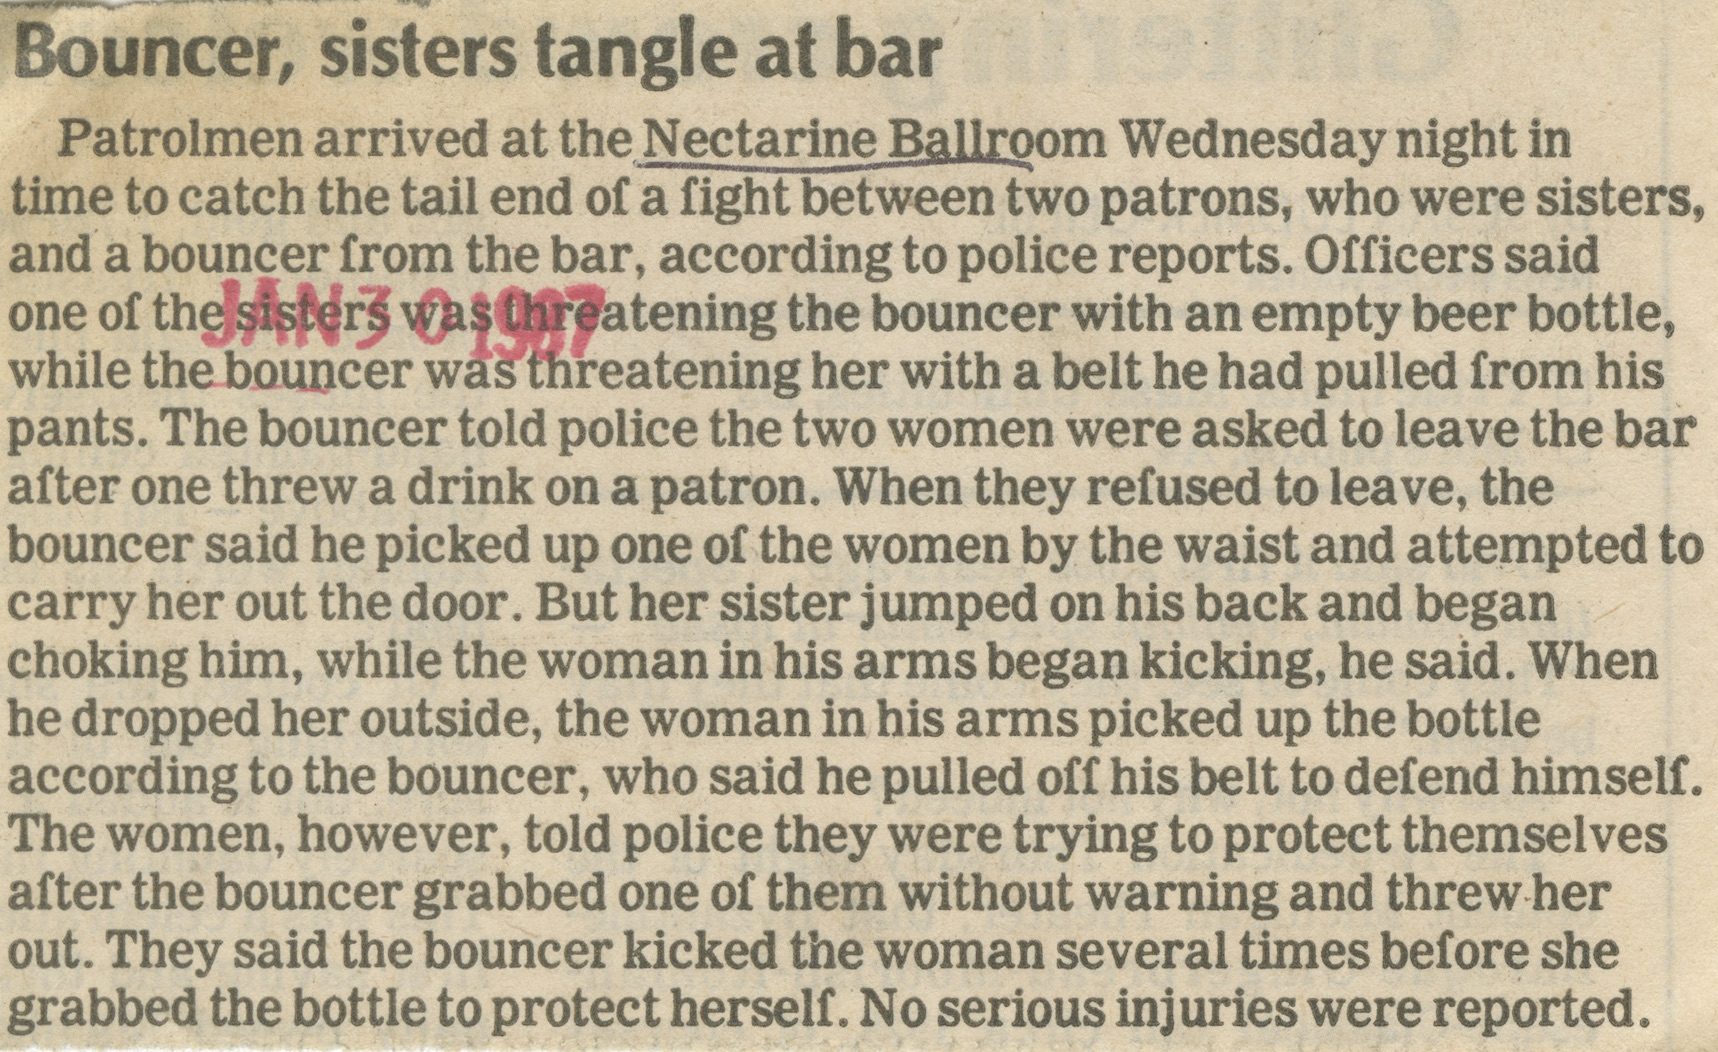 Bouncer, sisters tangle at bar image